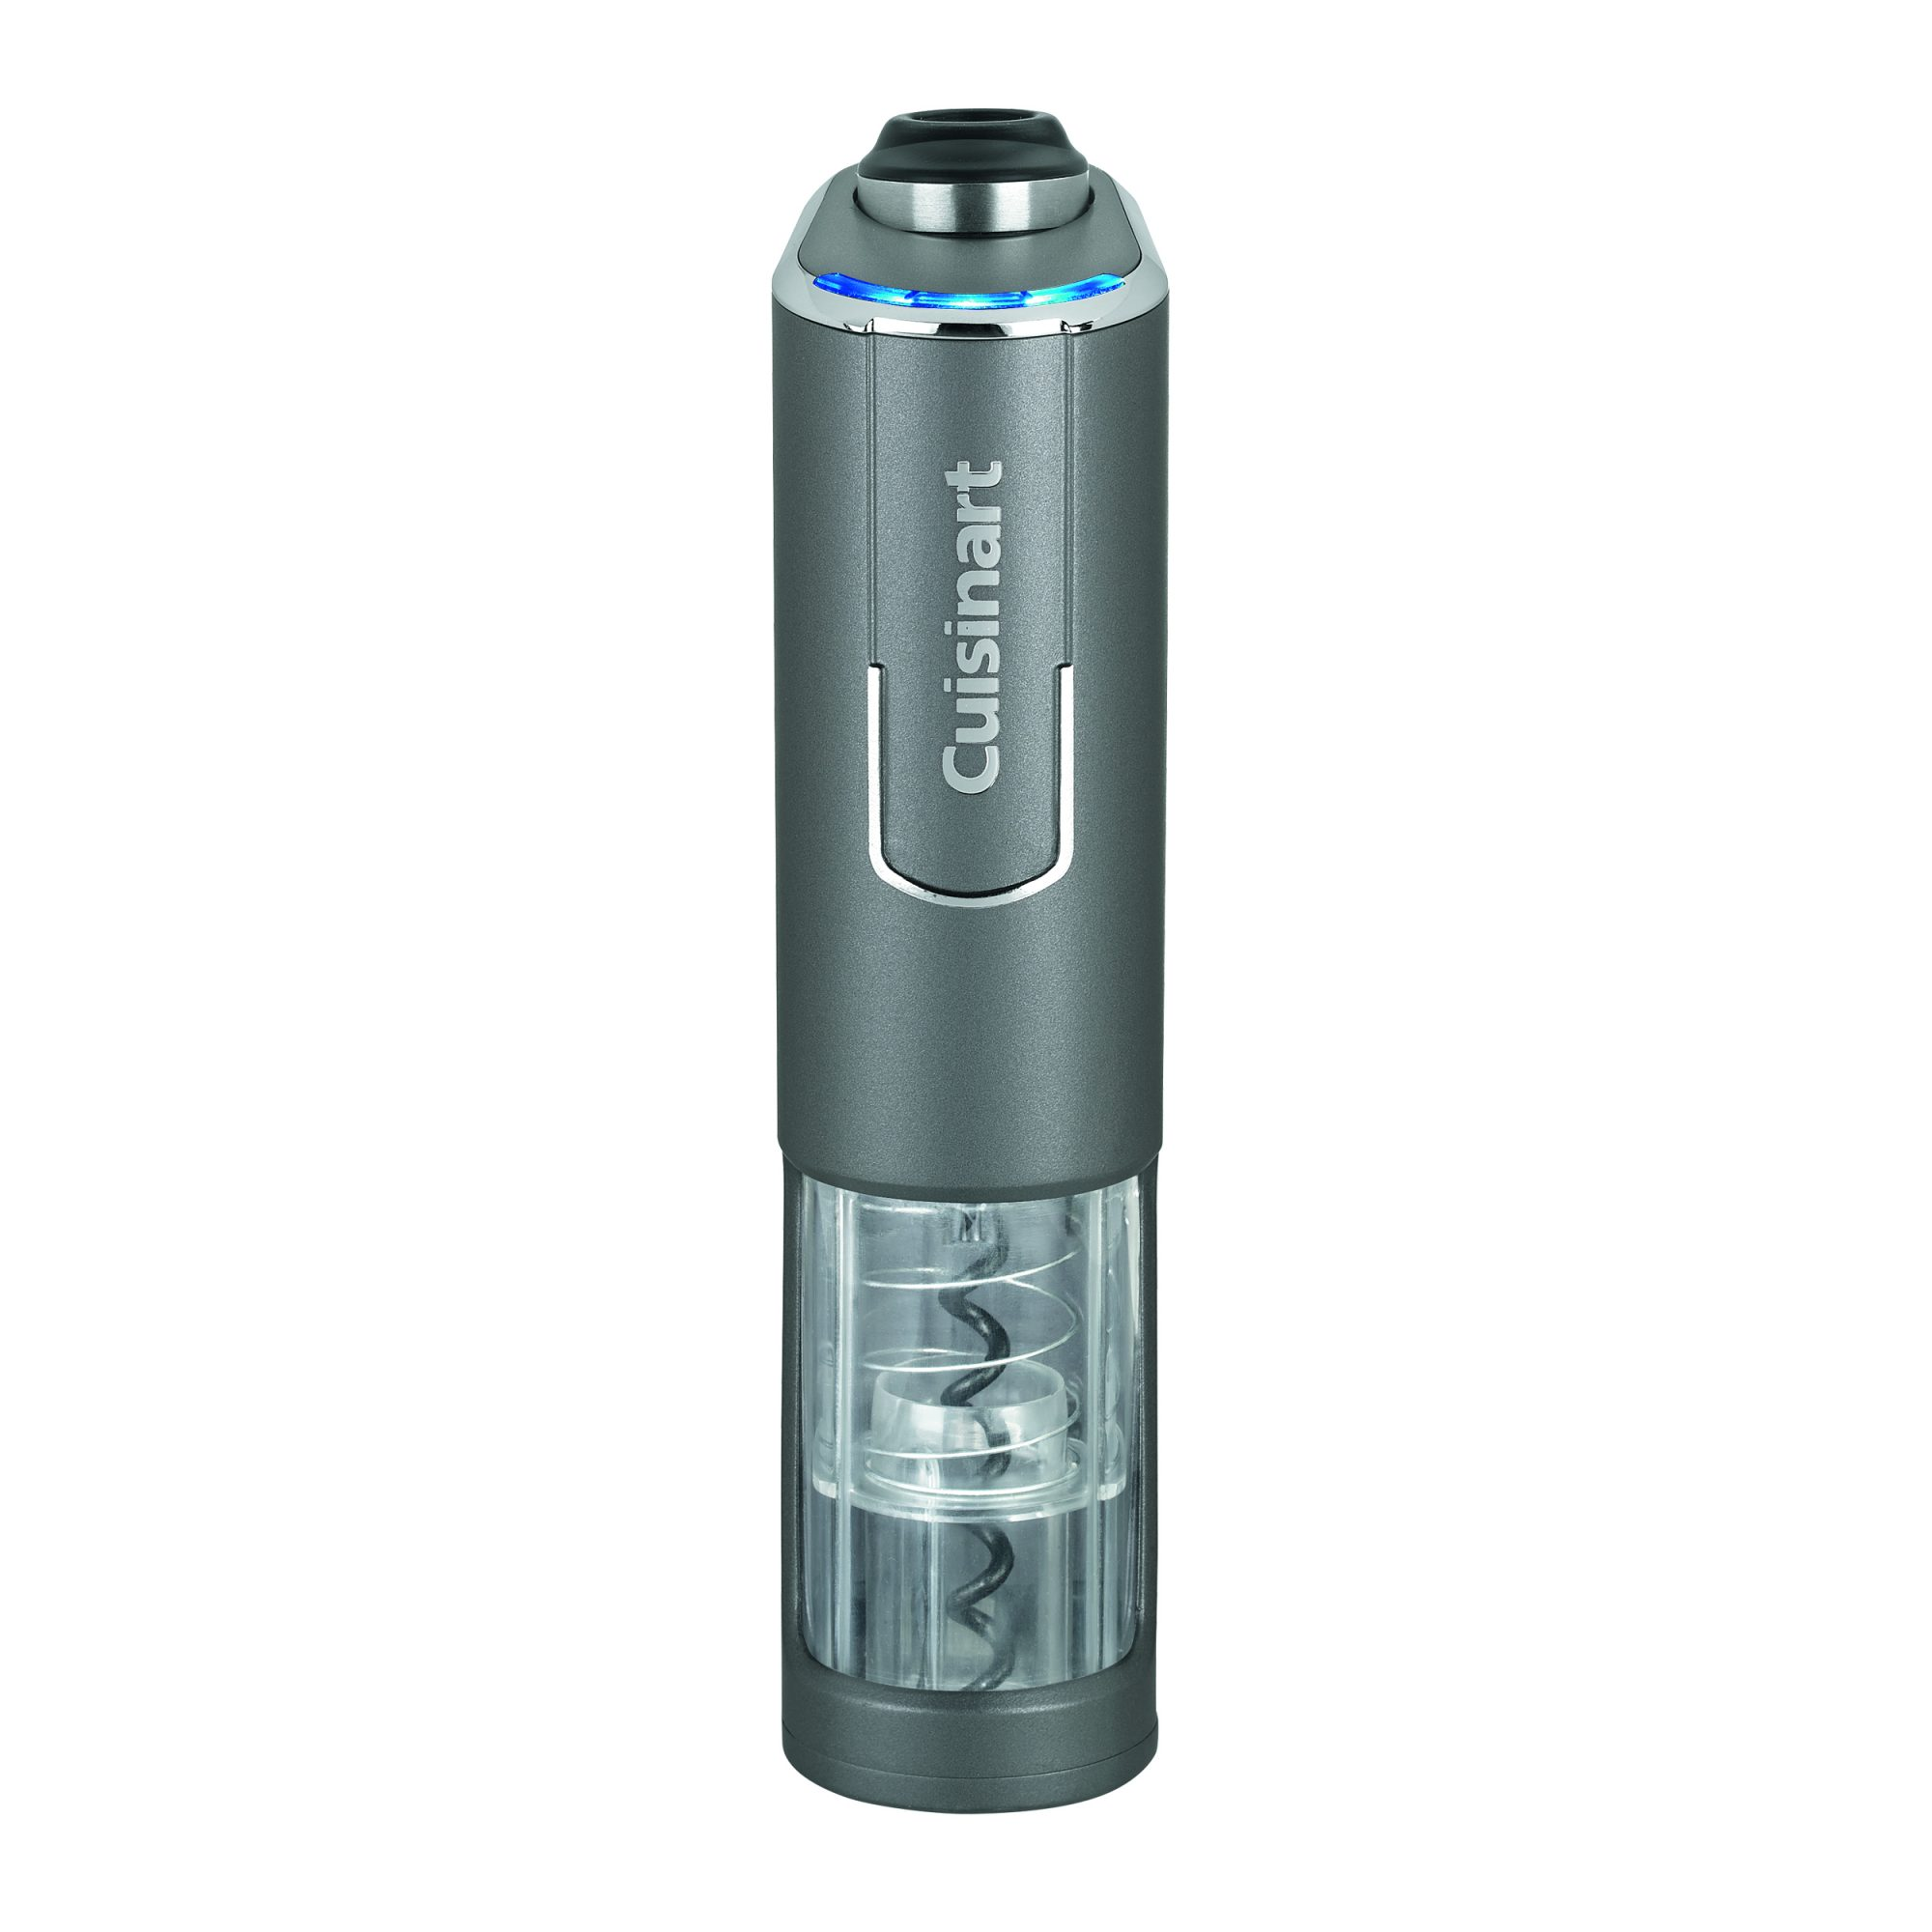 Cuisinart Cordless Rechargeable 4-in-1 Wine Center